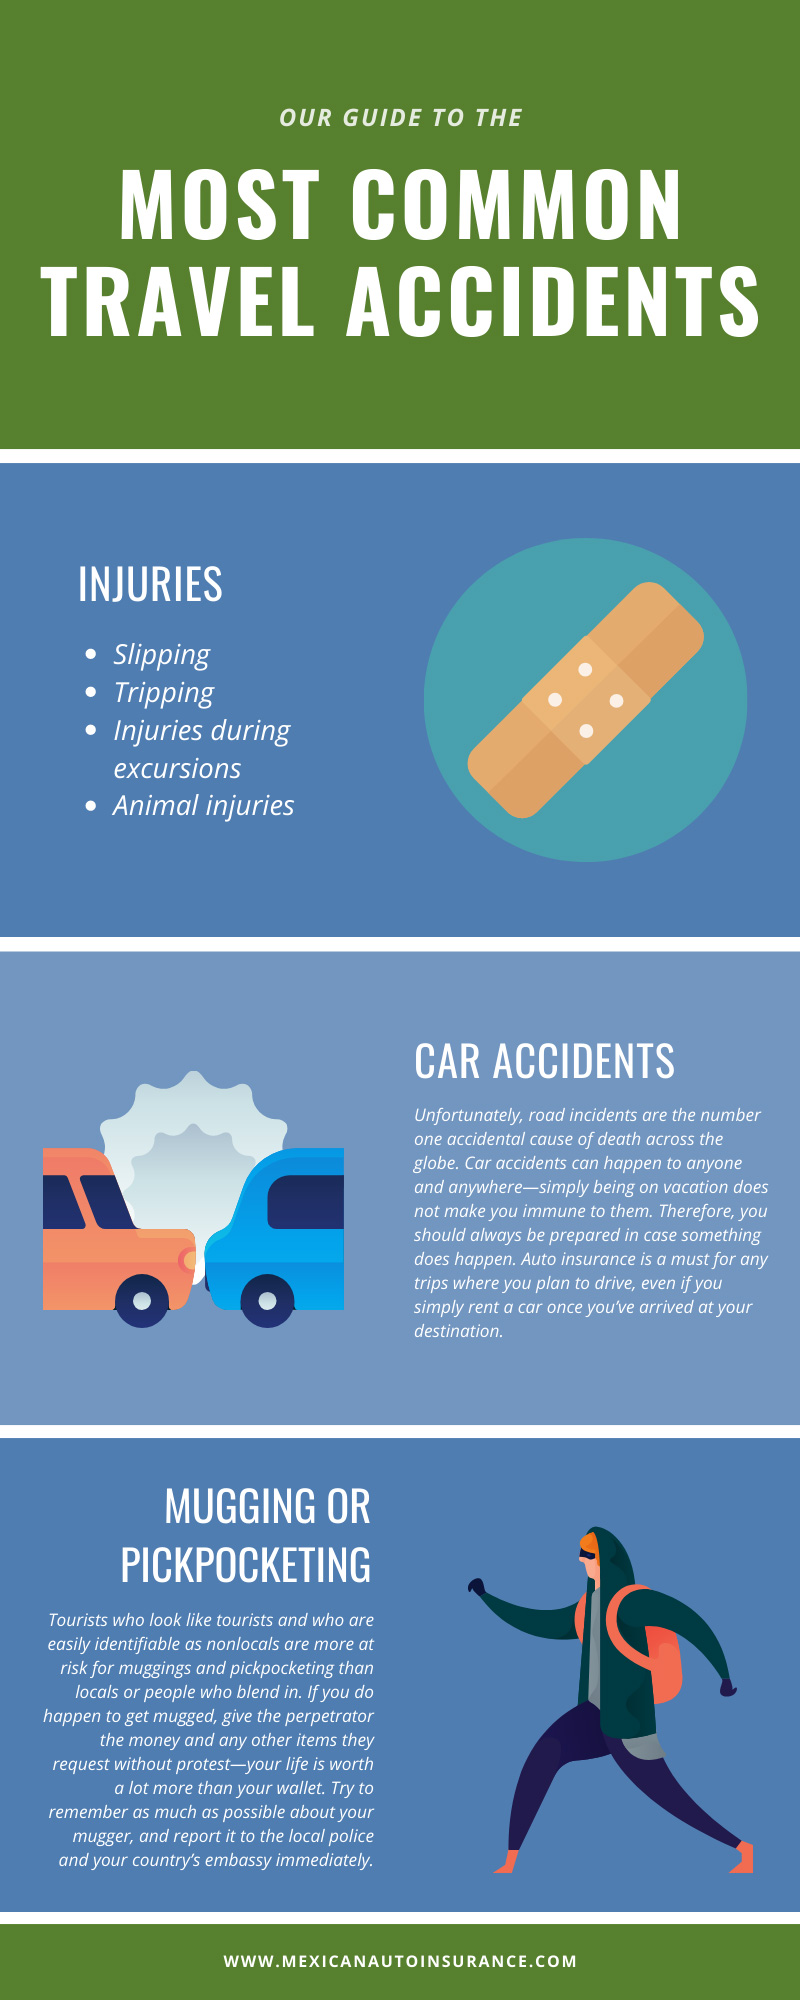 Our Guide to the Most Common Travel Accidents infographic